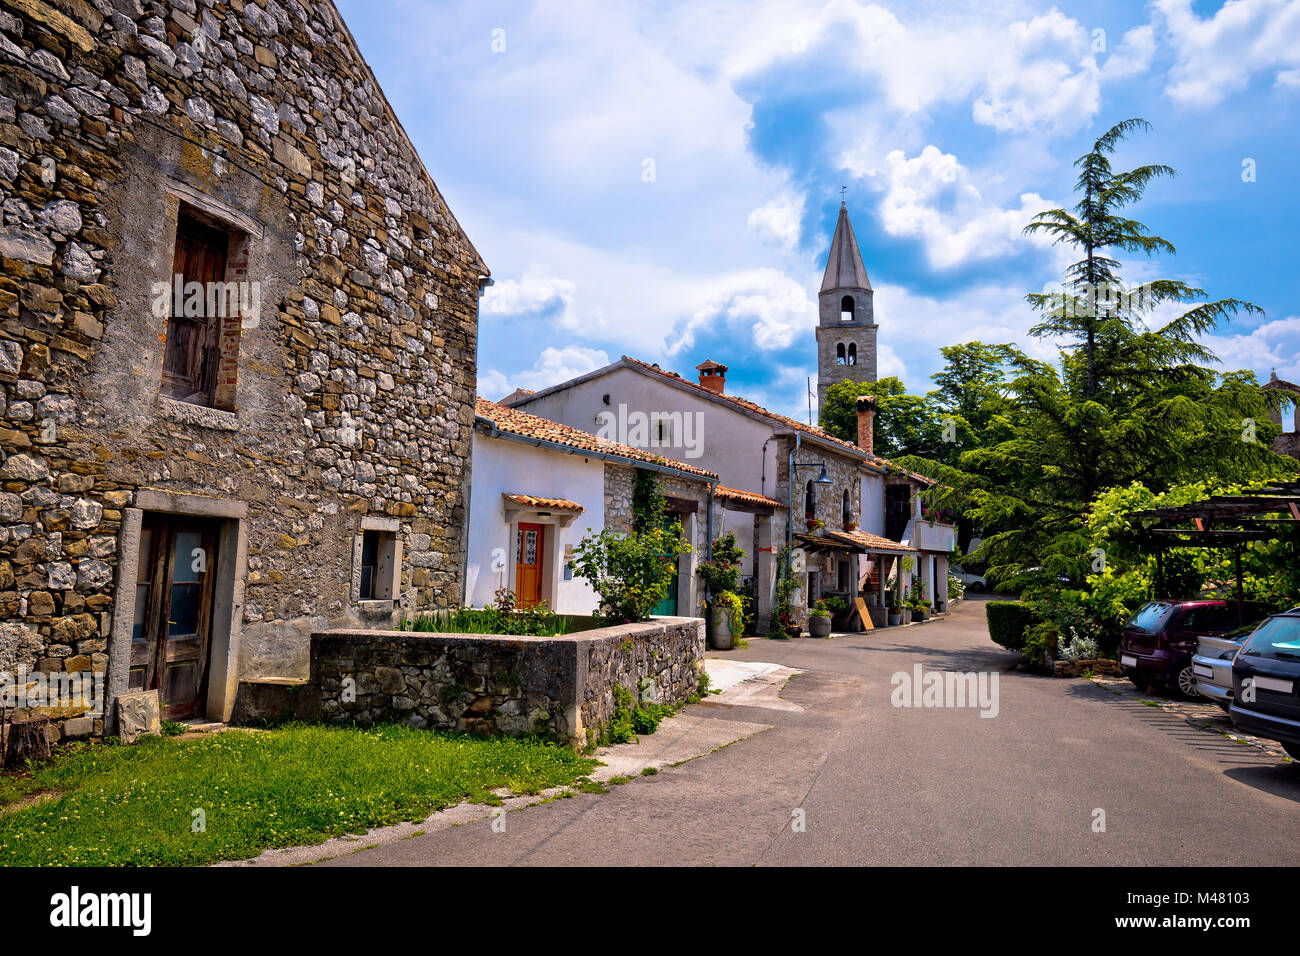 Stone village of Roc main street view - Stock Image